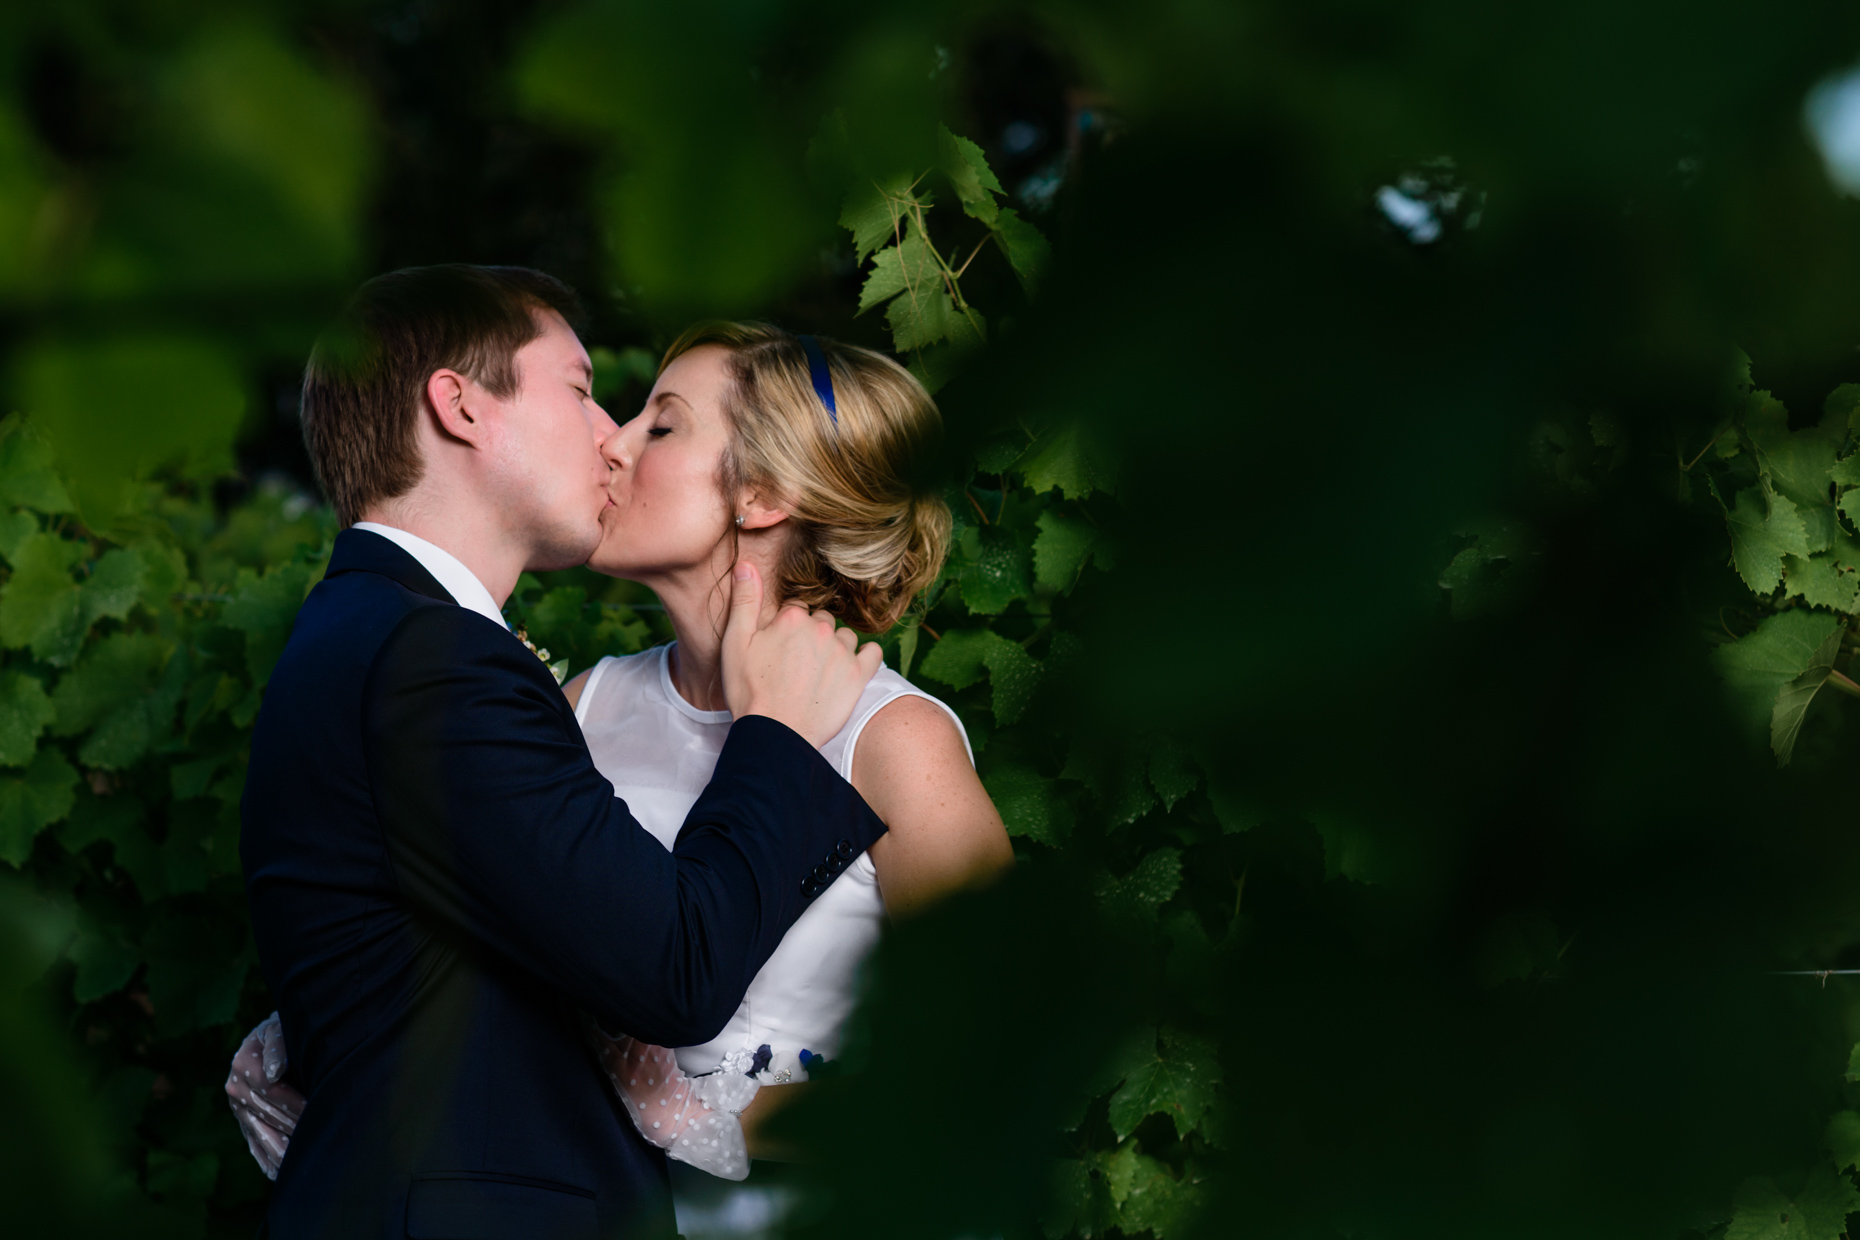 bride-groom-kissing-austin-wedding-photographers-vineyards-texas-love